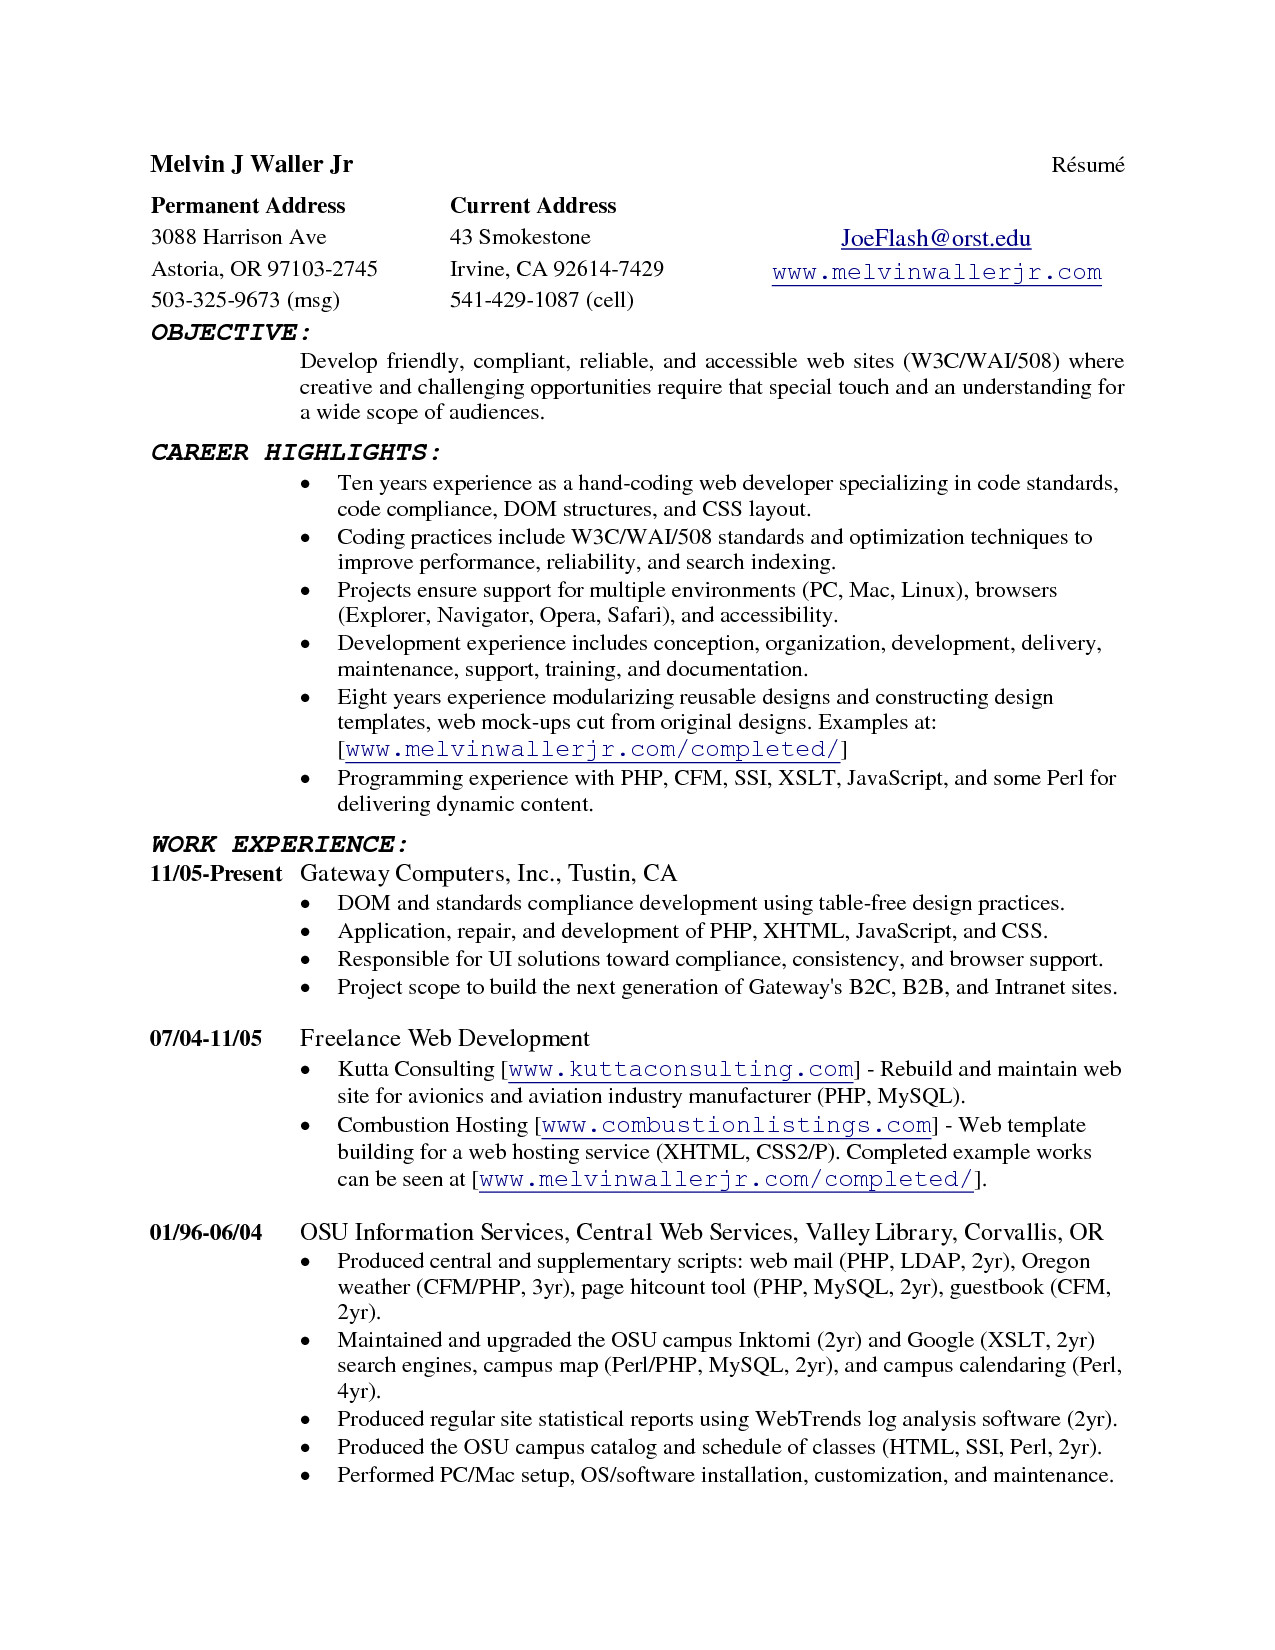 Professional Letter Of Recommendation Template Free - Writer Resume Template Financial Services Resume Template New Hr